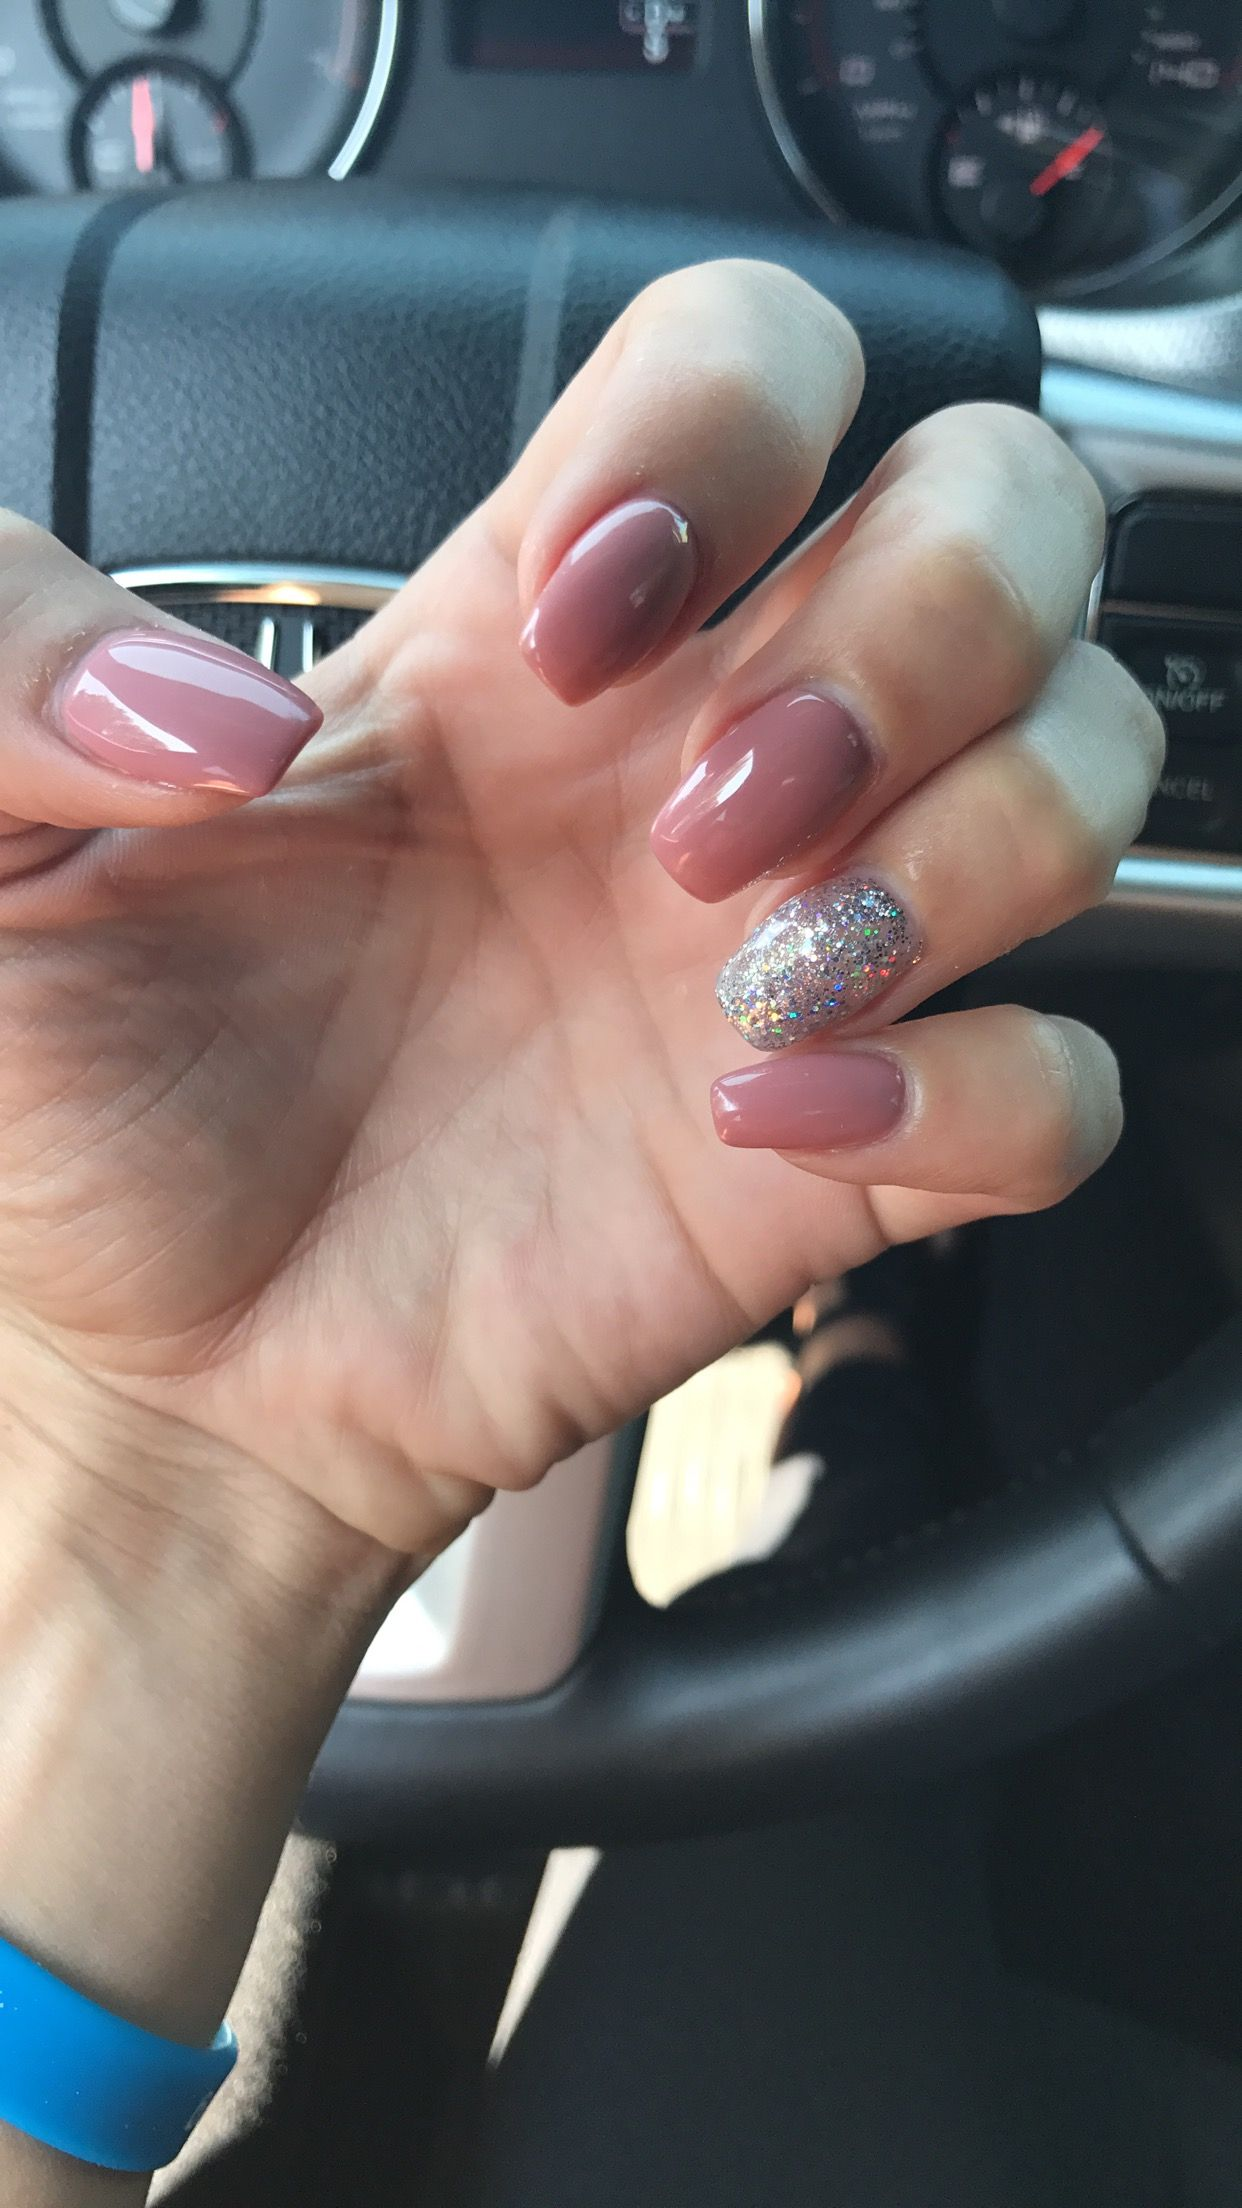 Mauve Coffin Mauve Nails Glitter French Nails Pink Acrylic Nails